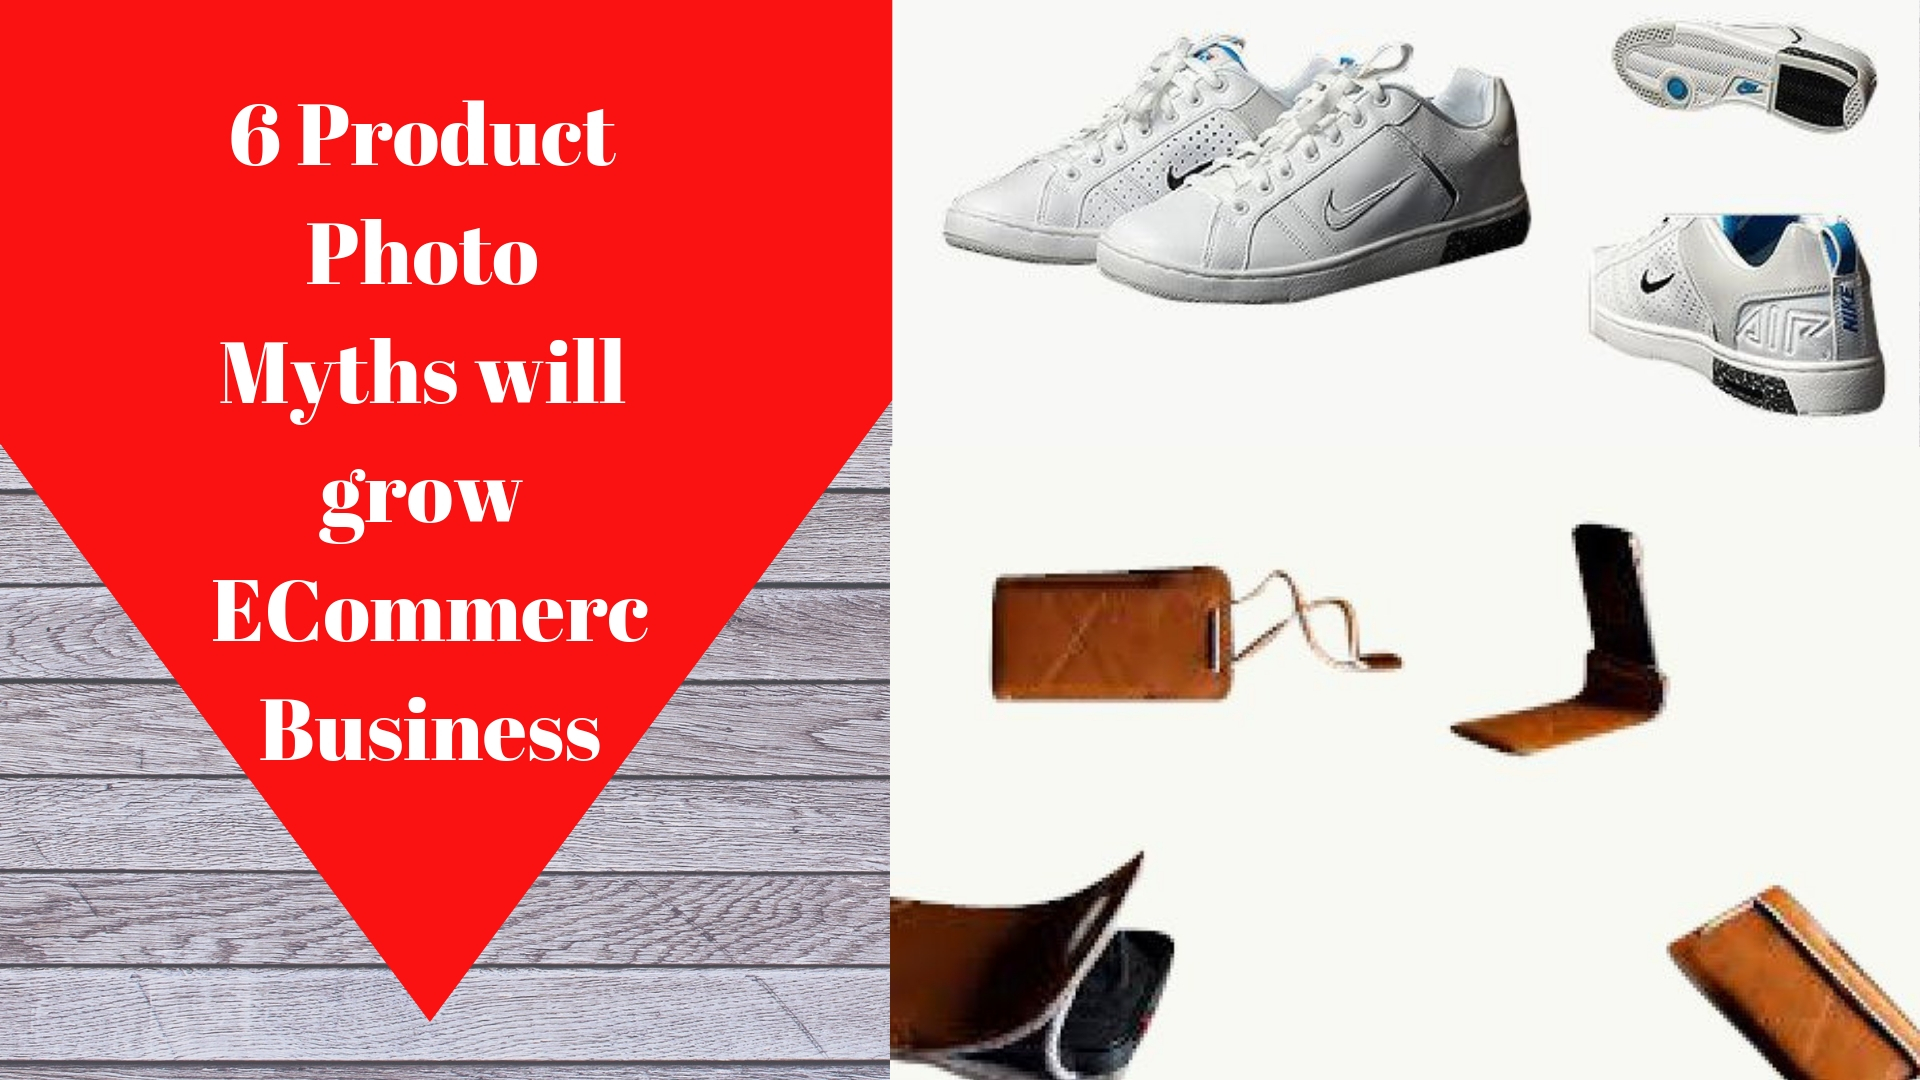 6 product photo Myths will grow E-Commerce Business